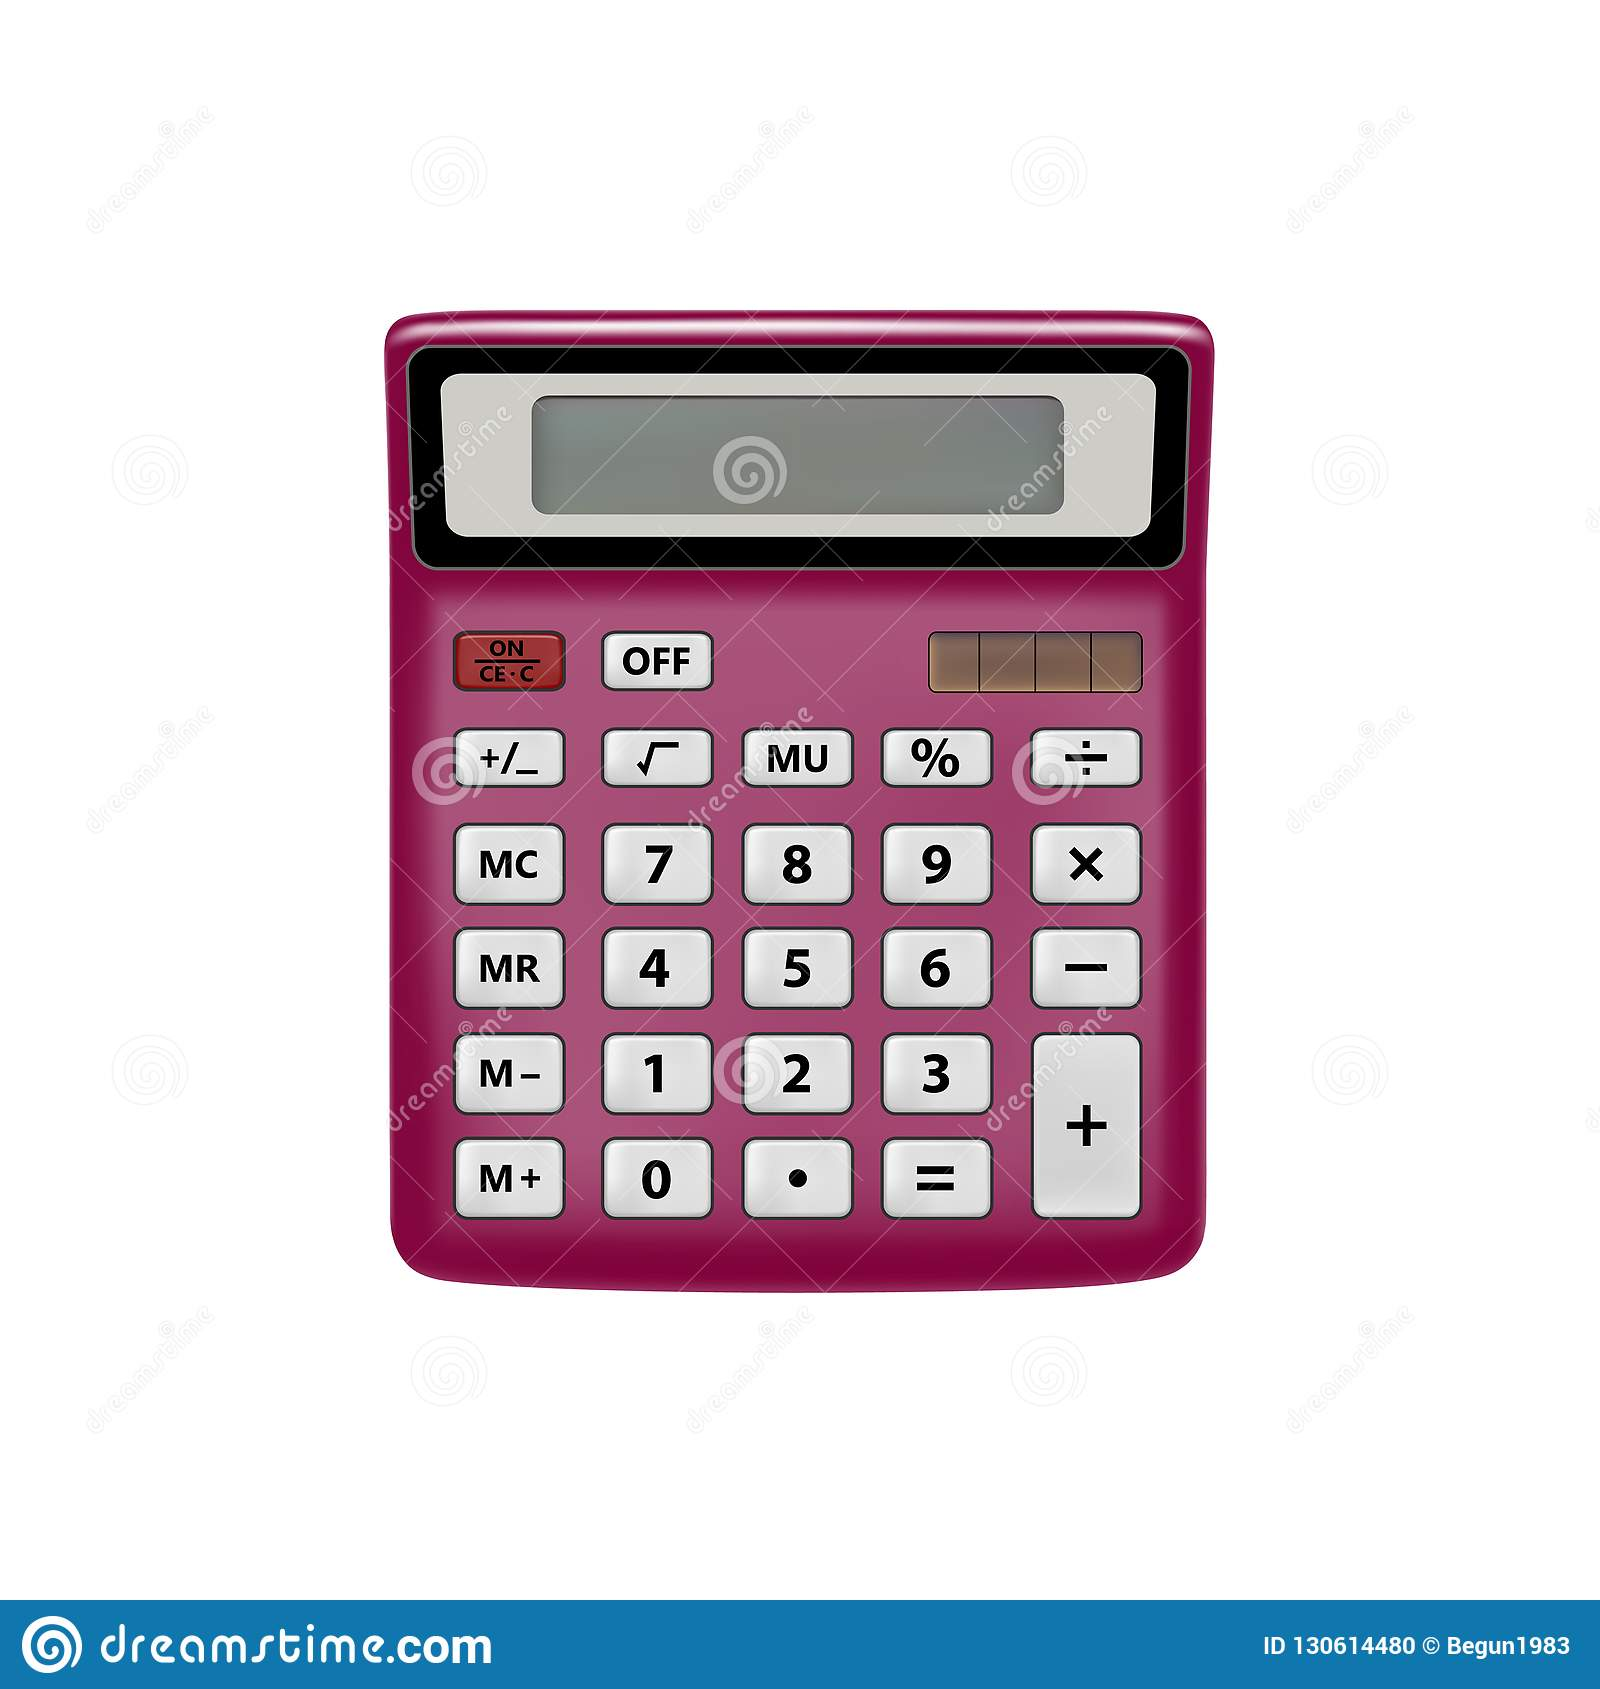 Realistic Calculator Isolated On White Background The Calculator Is